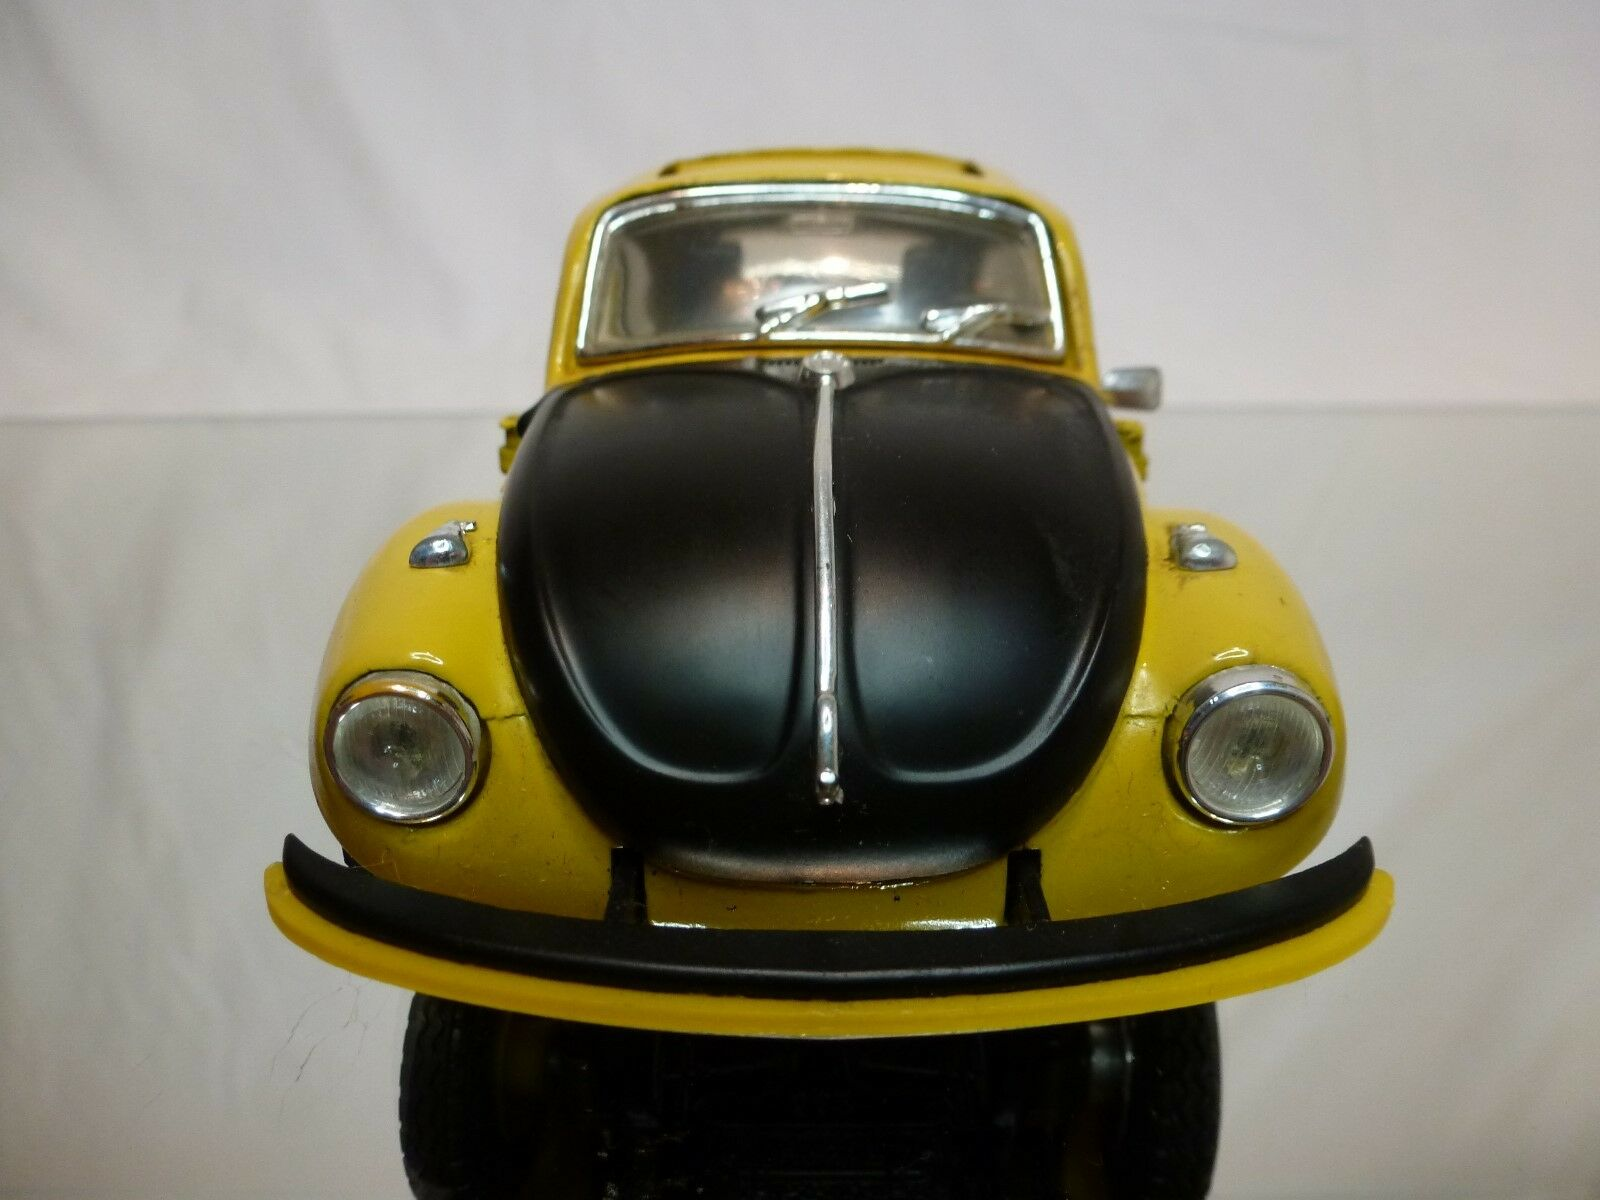 GAMA  1 24 - VOLKSWAGEN 1302 BEETLE RALLY  NO= 442 RARE VERSION - GOOD CONDITION